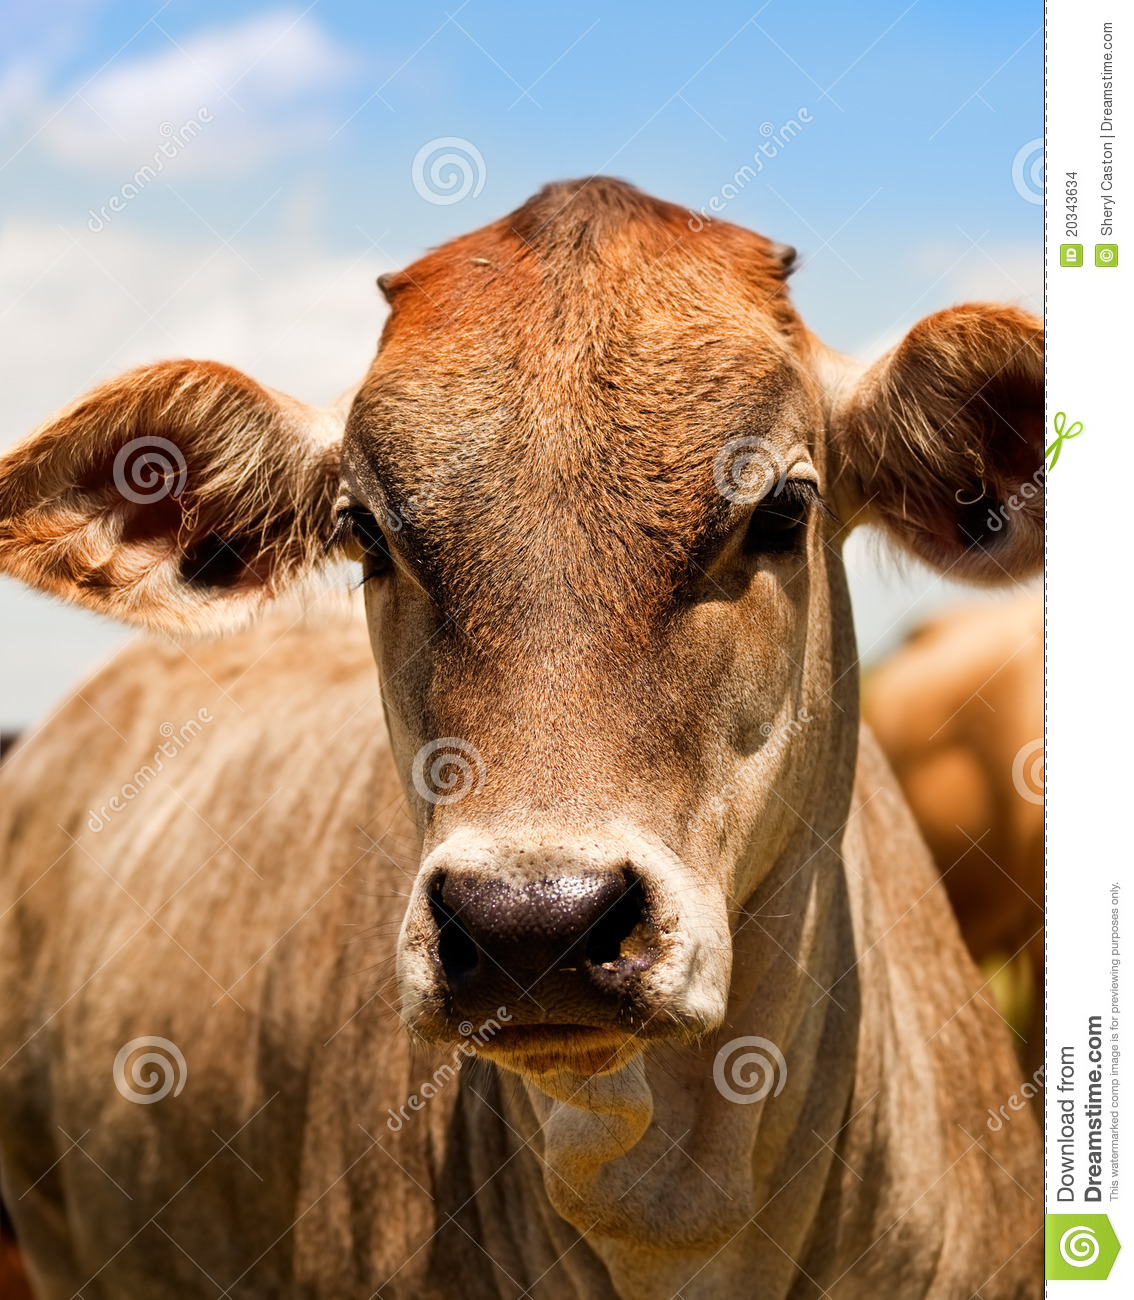 Facial growths on yearling cattle